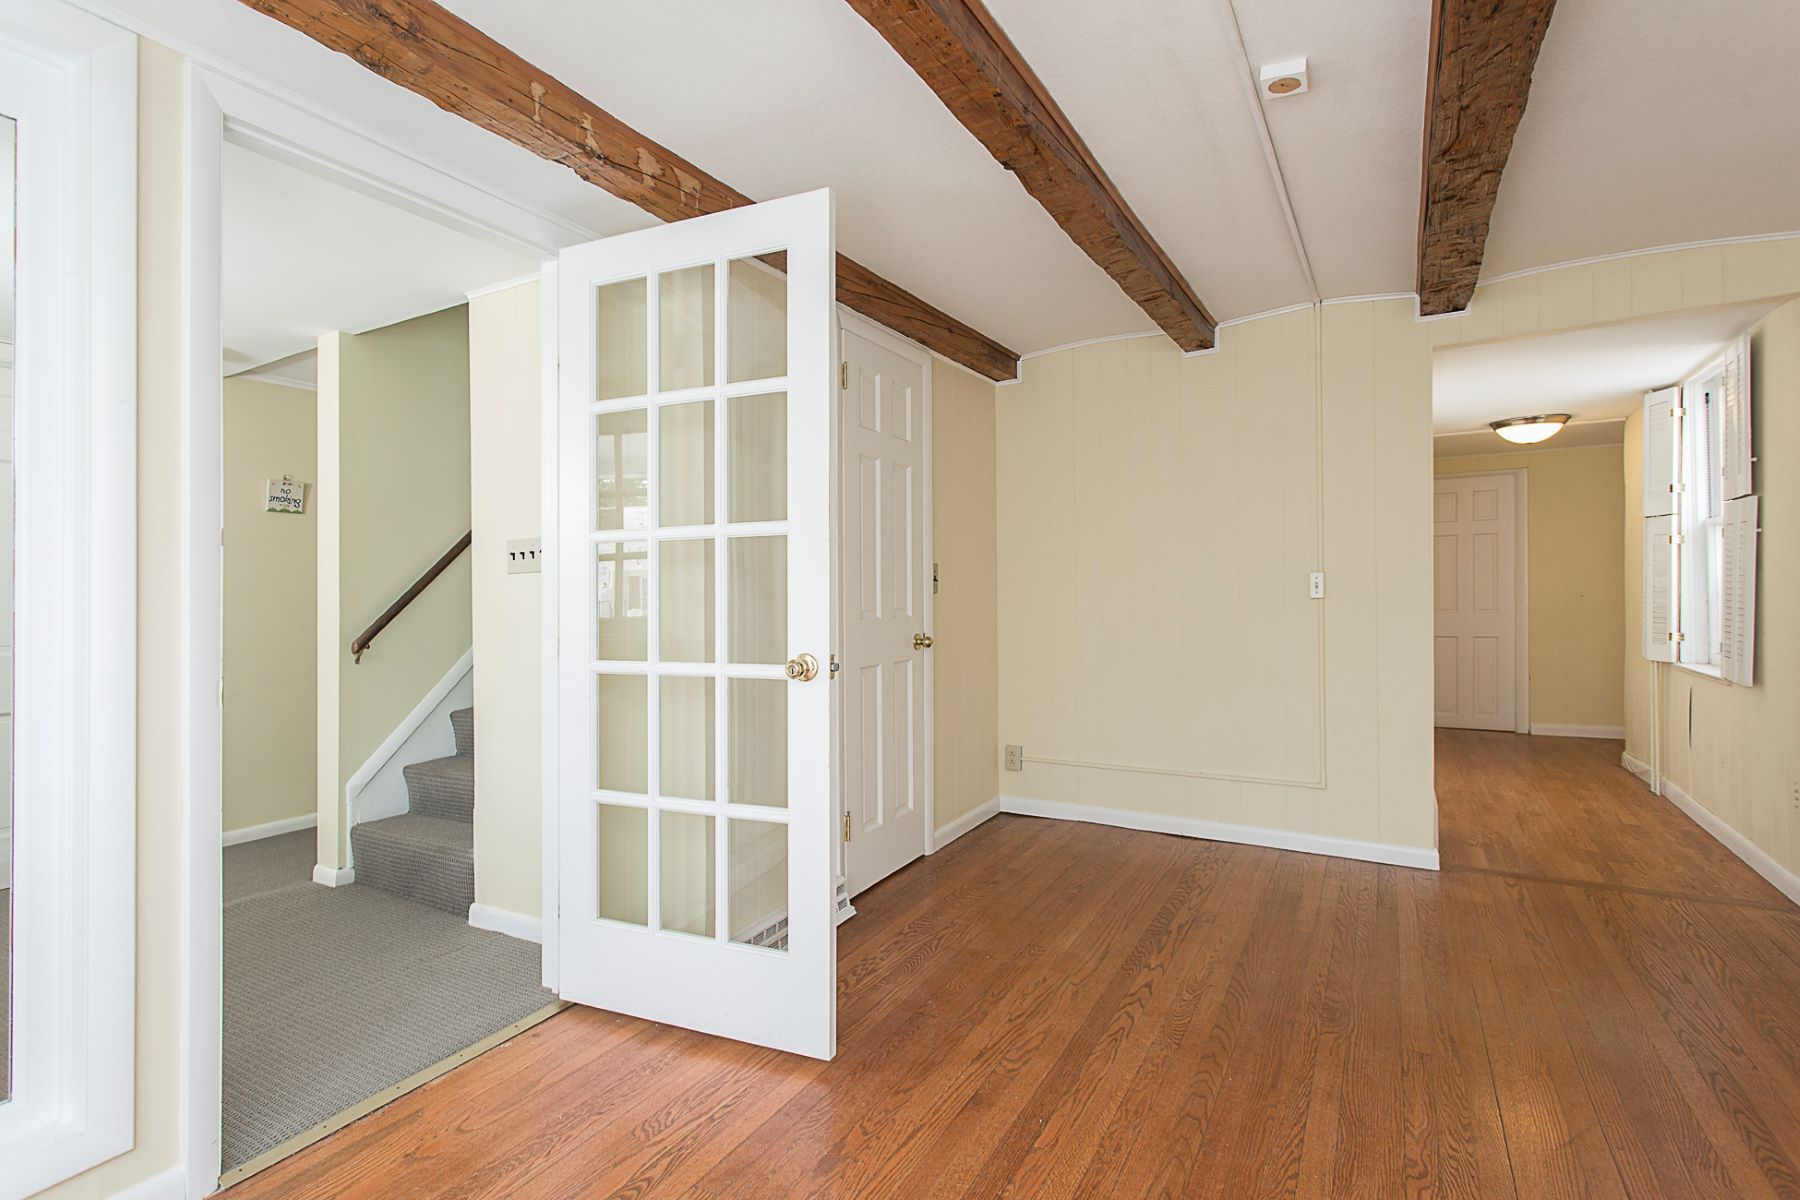 Additional photo for property listing at Traditional Charm Meets Mixed Use Flexibility 37 North Main Street, Cranbury, New Jersey 08512 United States